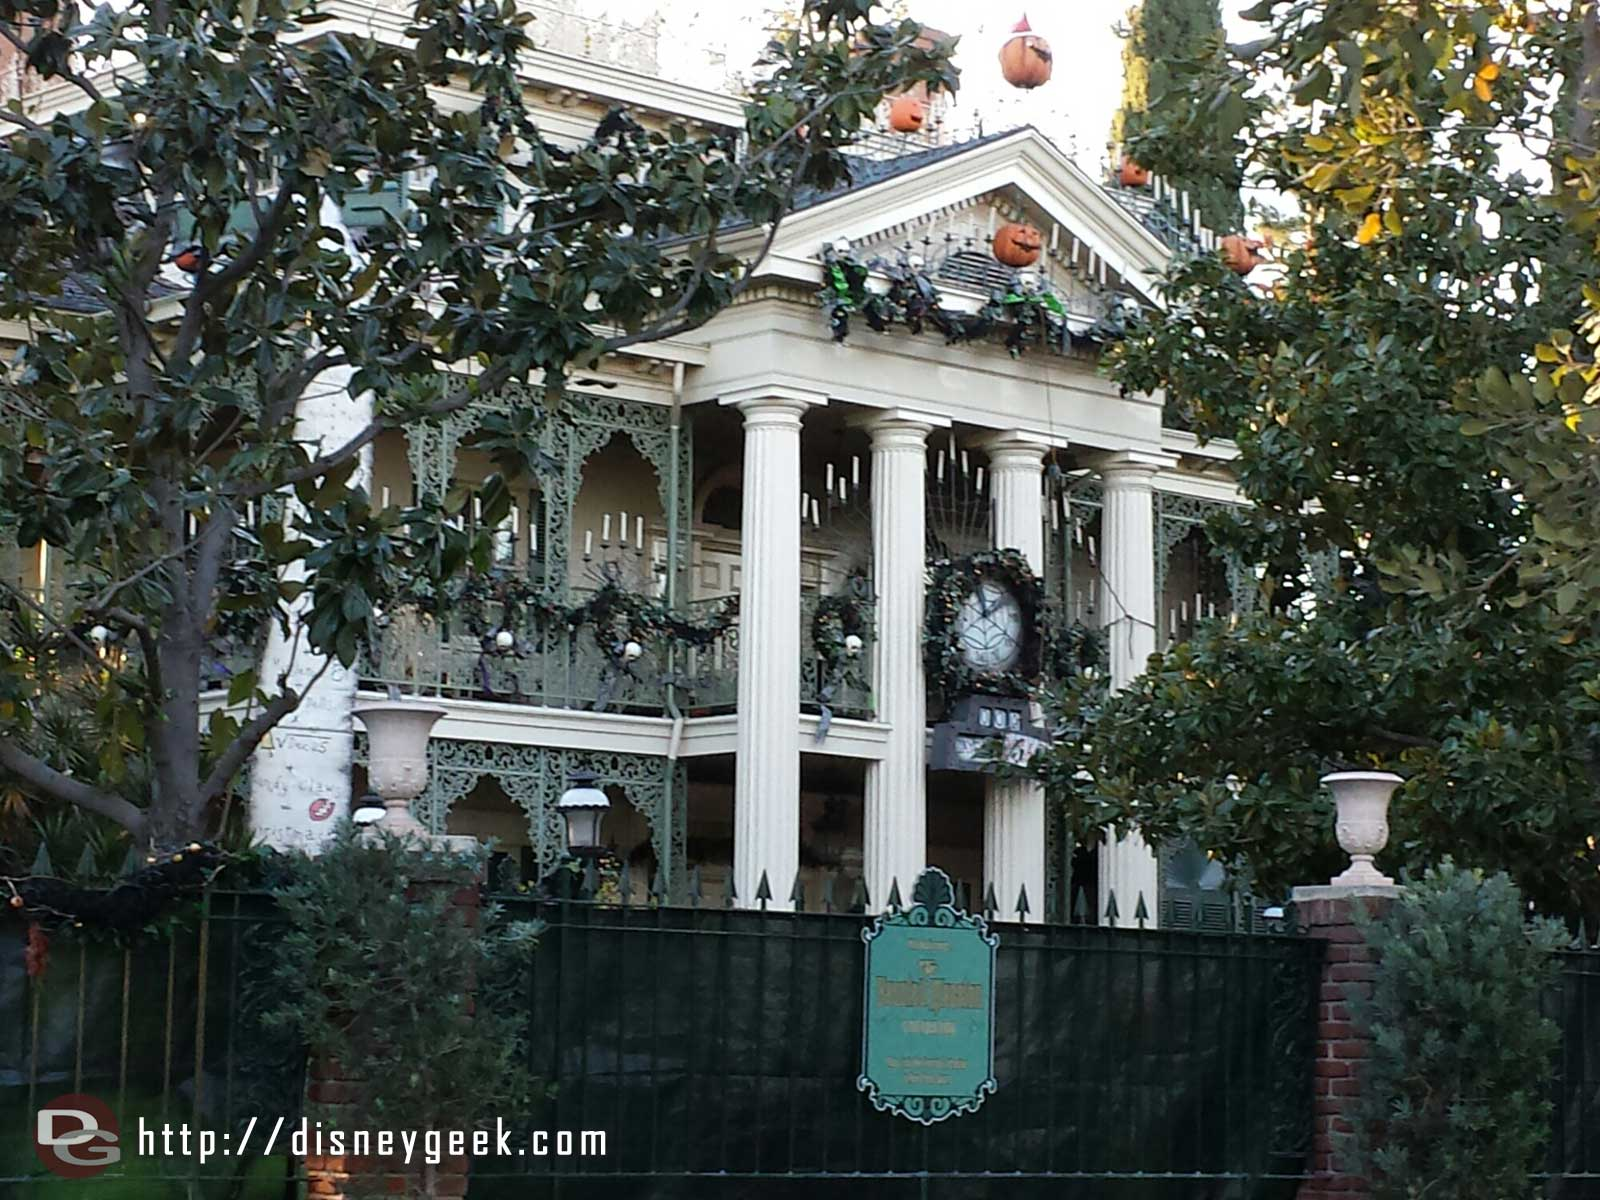 The Haunted Mansion is currently closed for removal of the holiday overlay #Disneyland